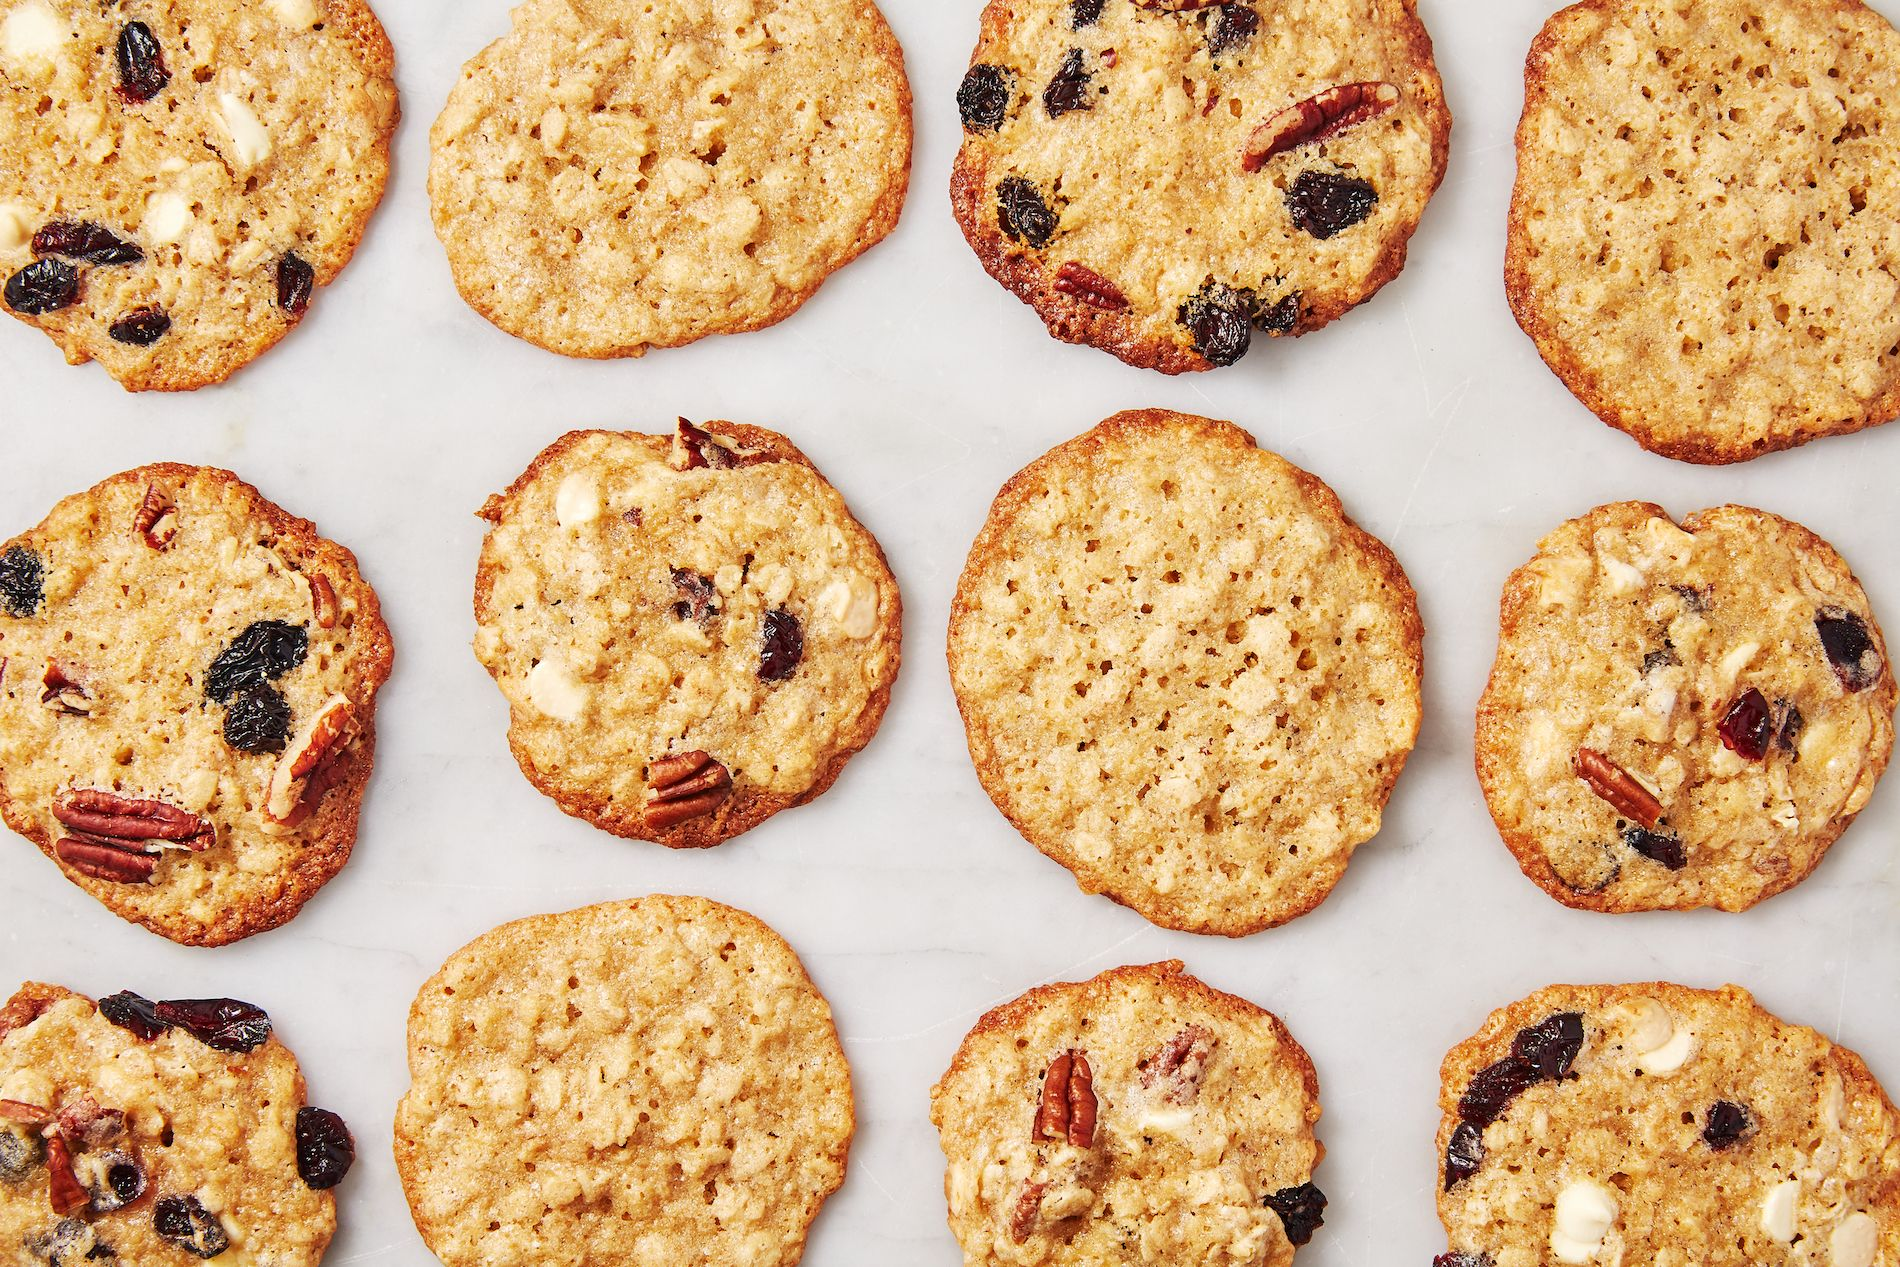 Best-Ever Oatmeal Cookies